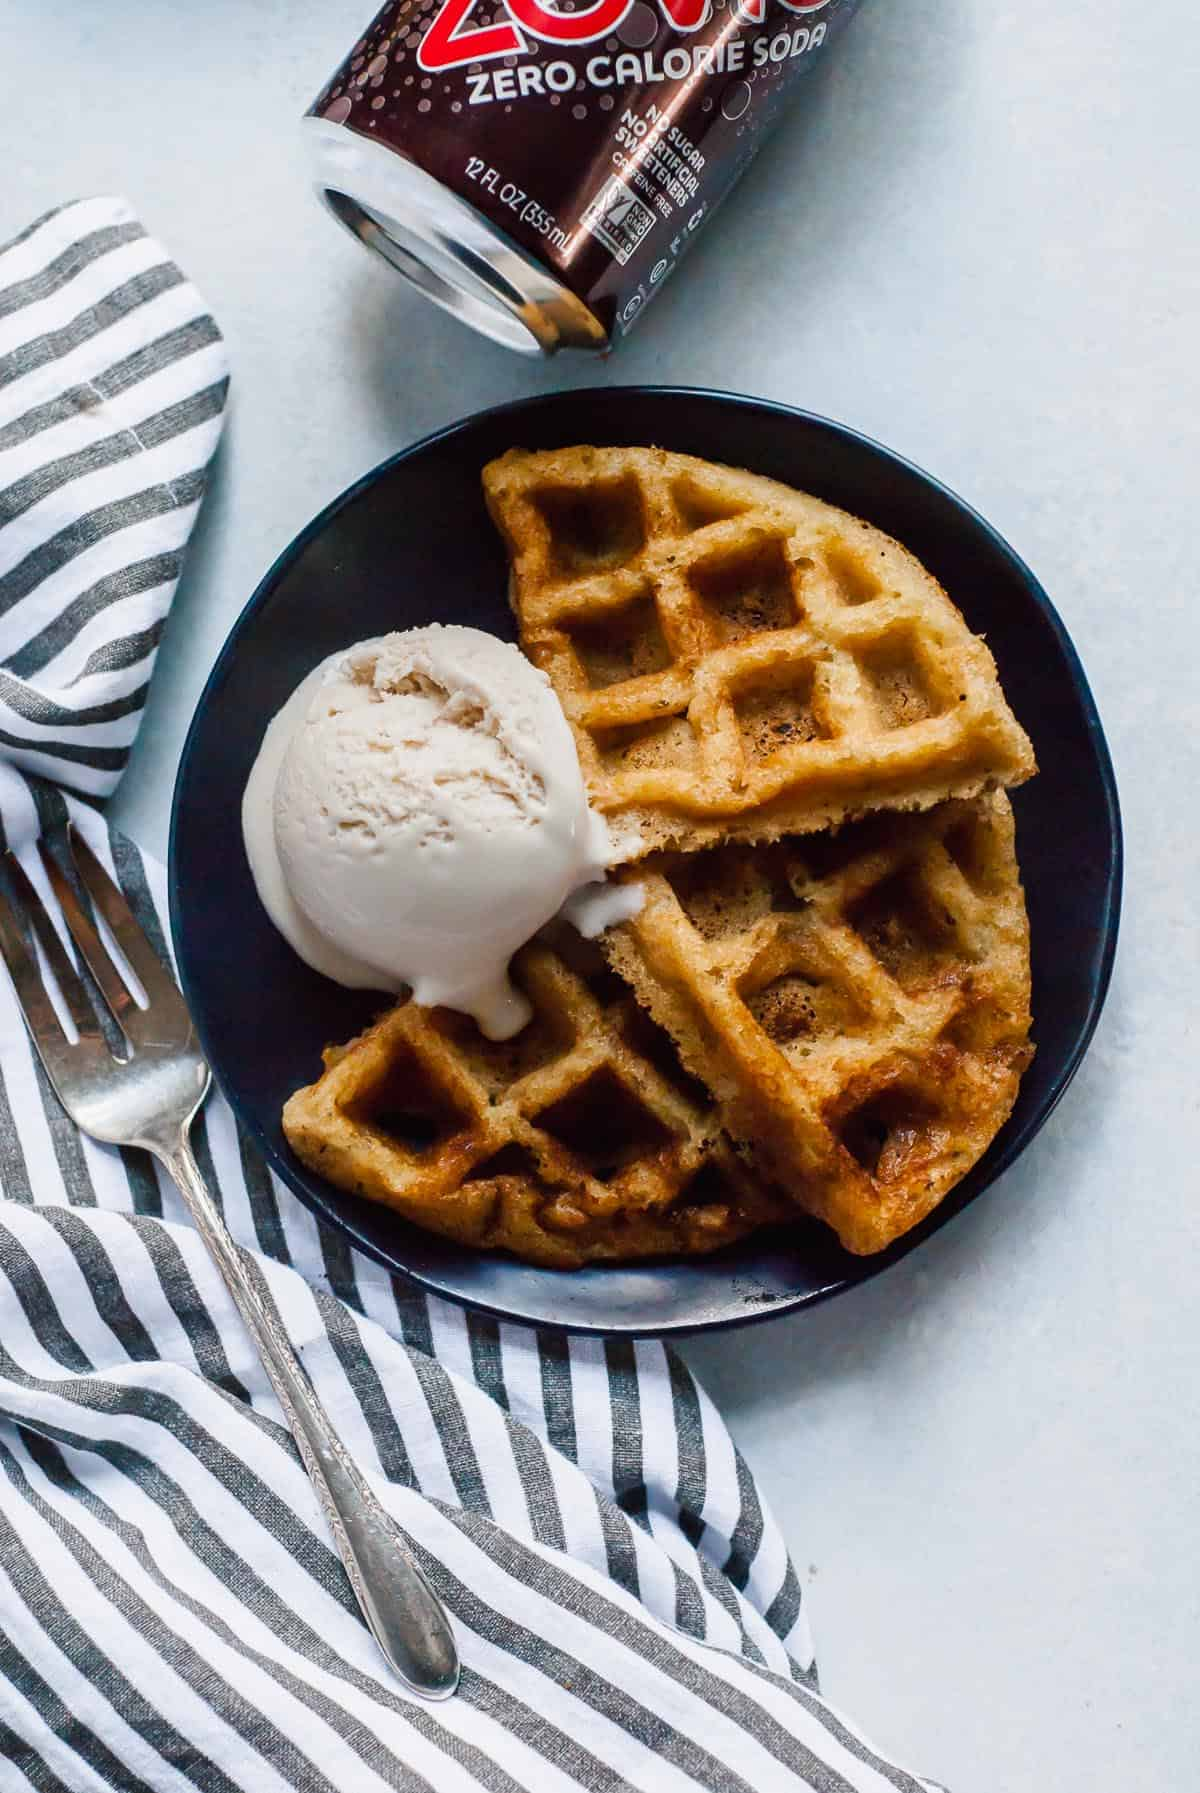 waffles on blue board with zevia can and striped napkin